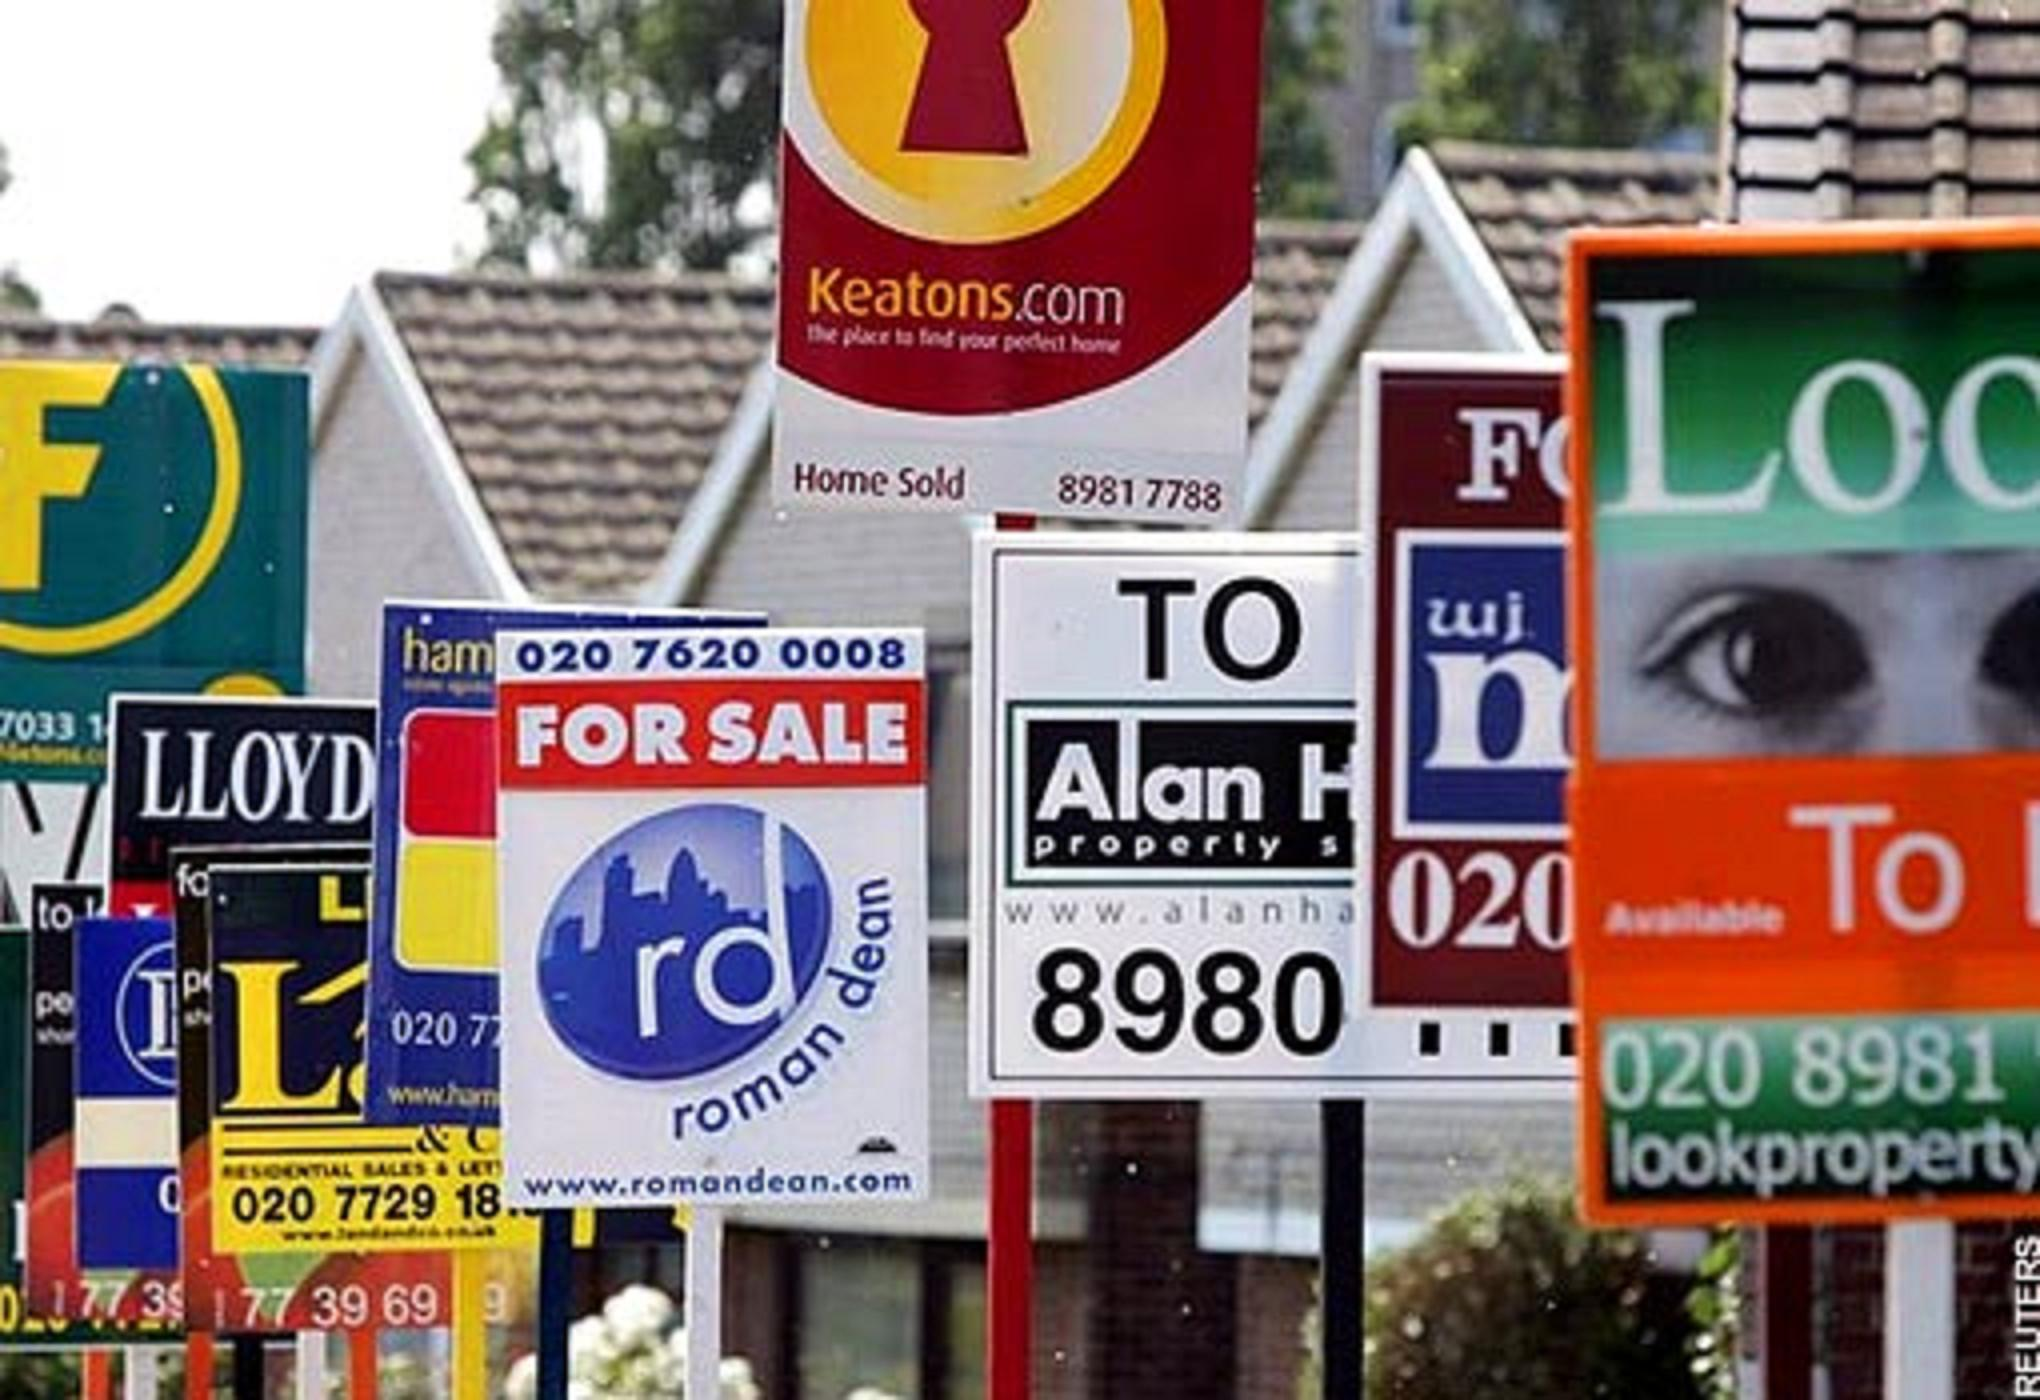 Trying to get a mortgage in Devon? It just became a lot more difficult